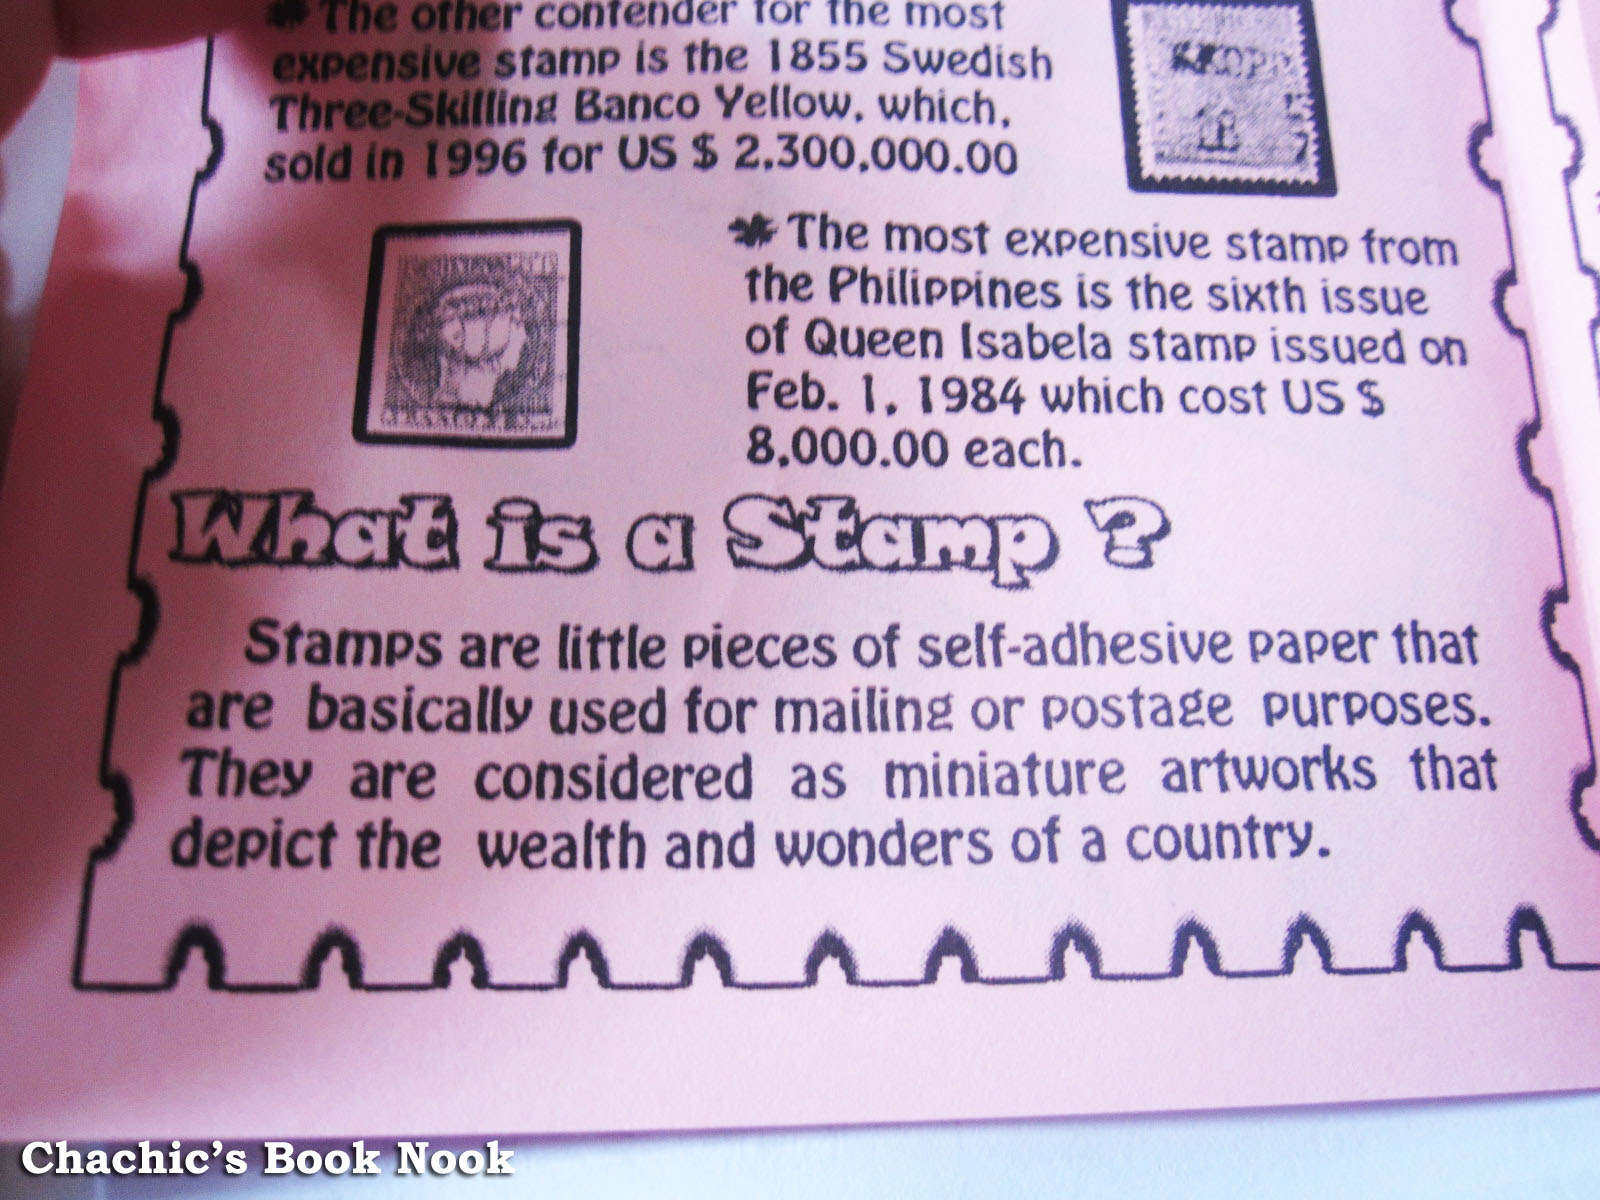 What is a stamp